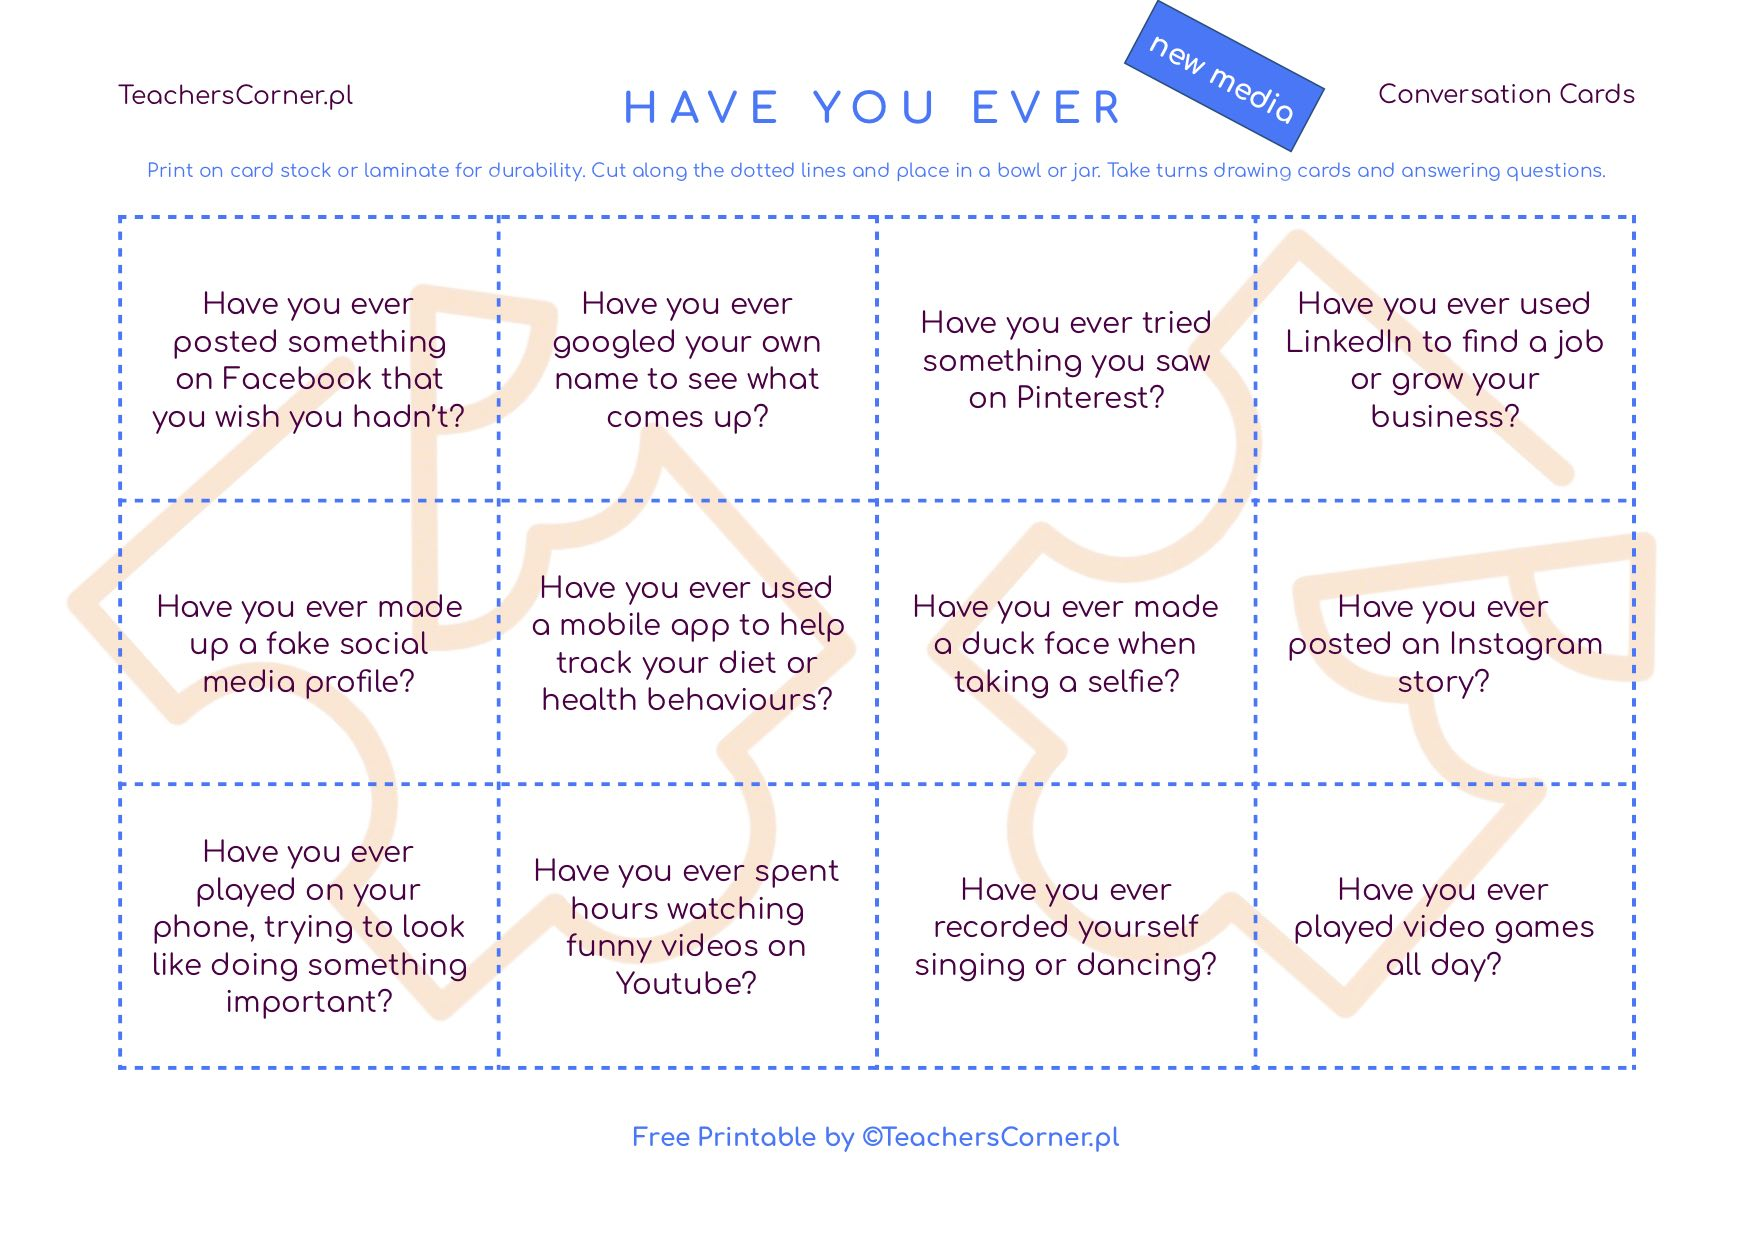 Have you ever Conversation Cards